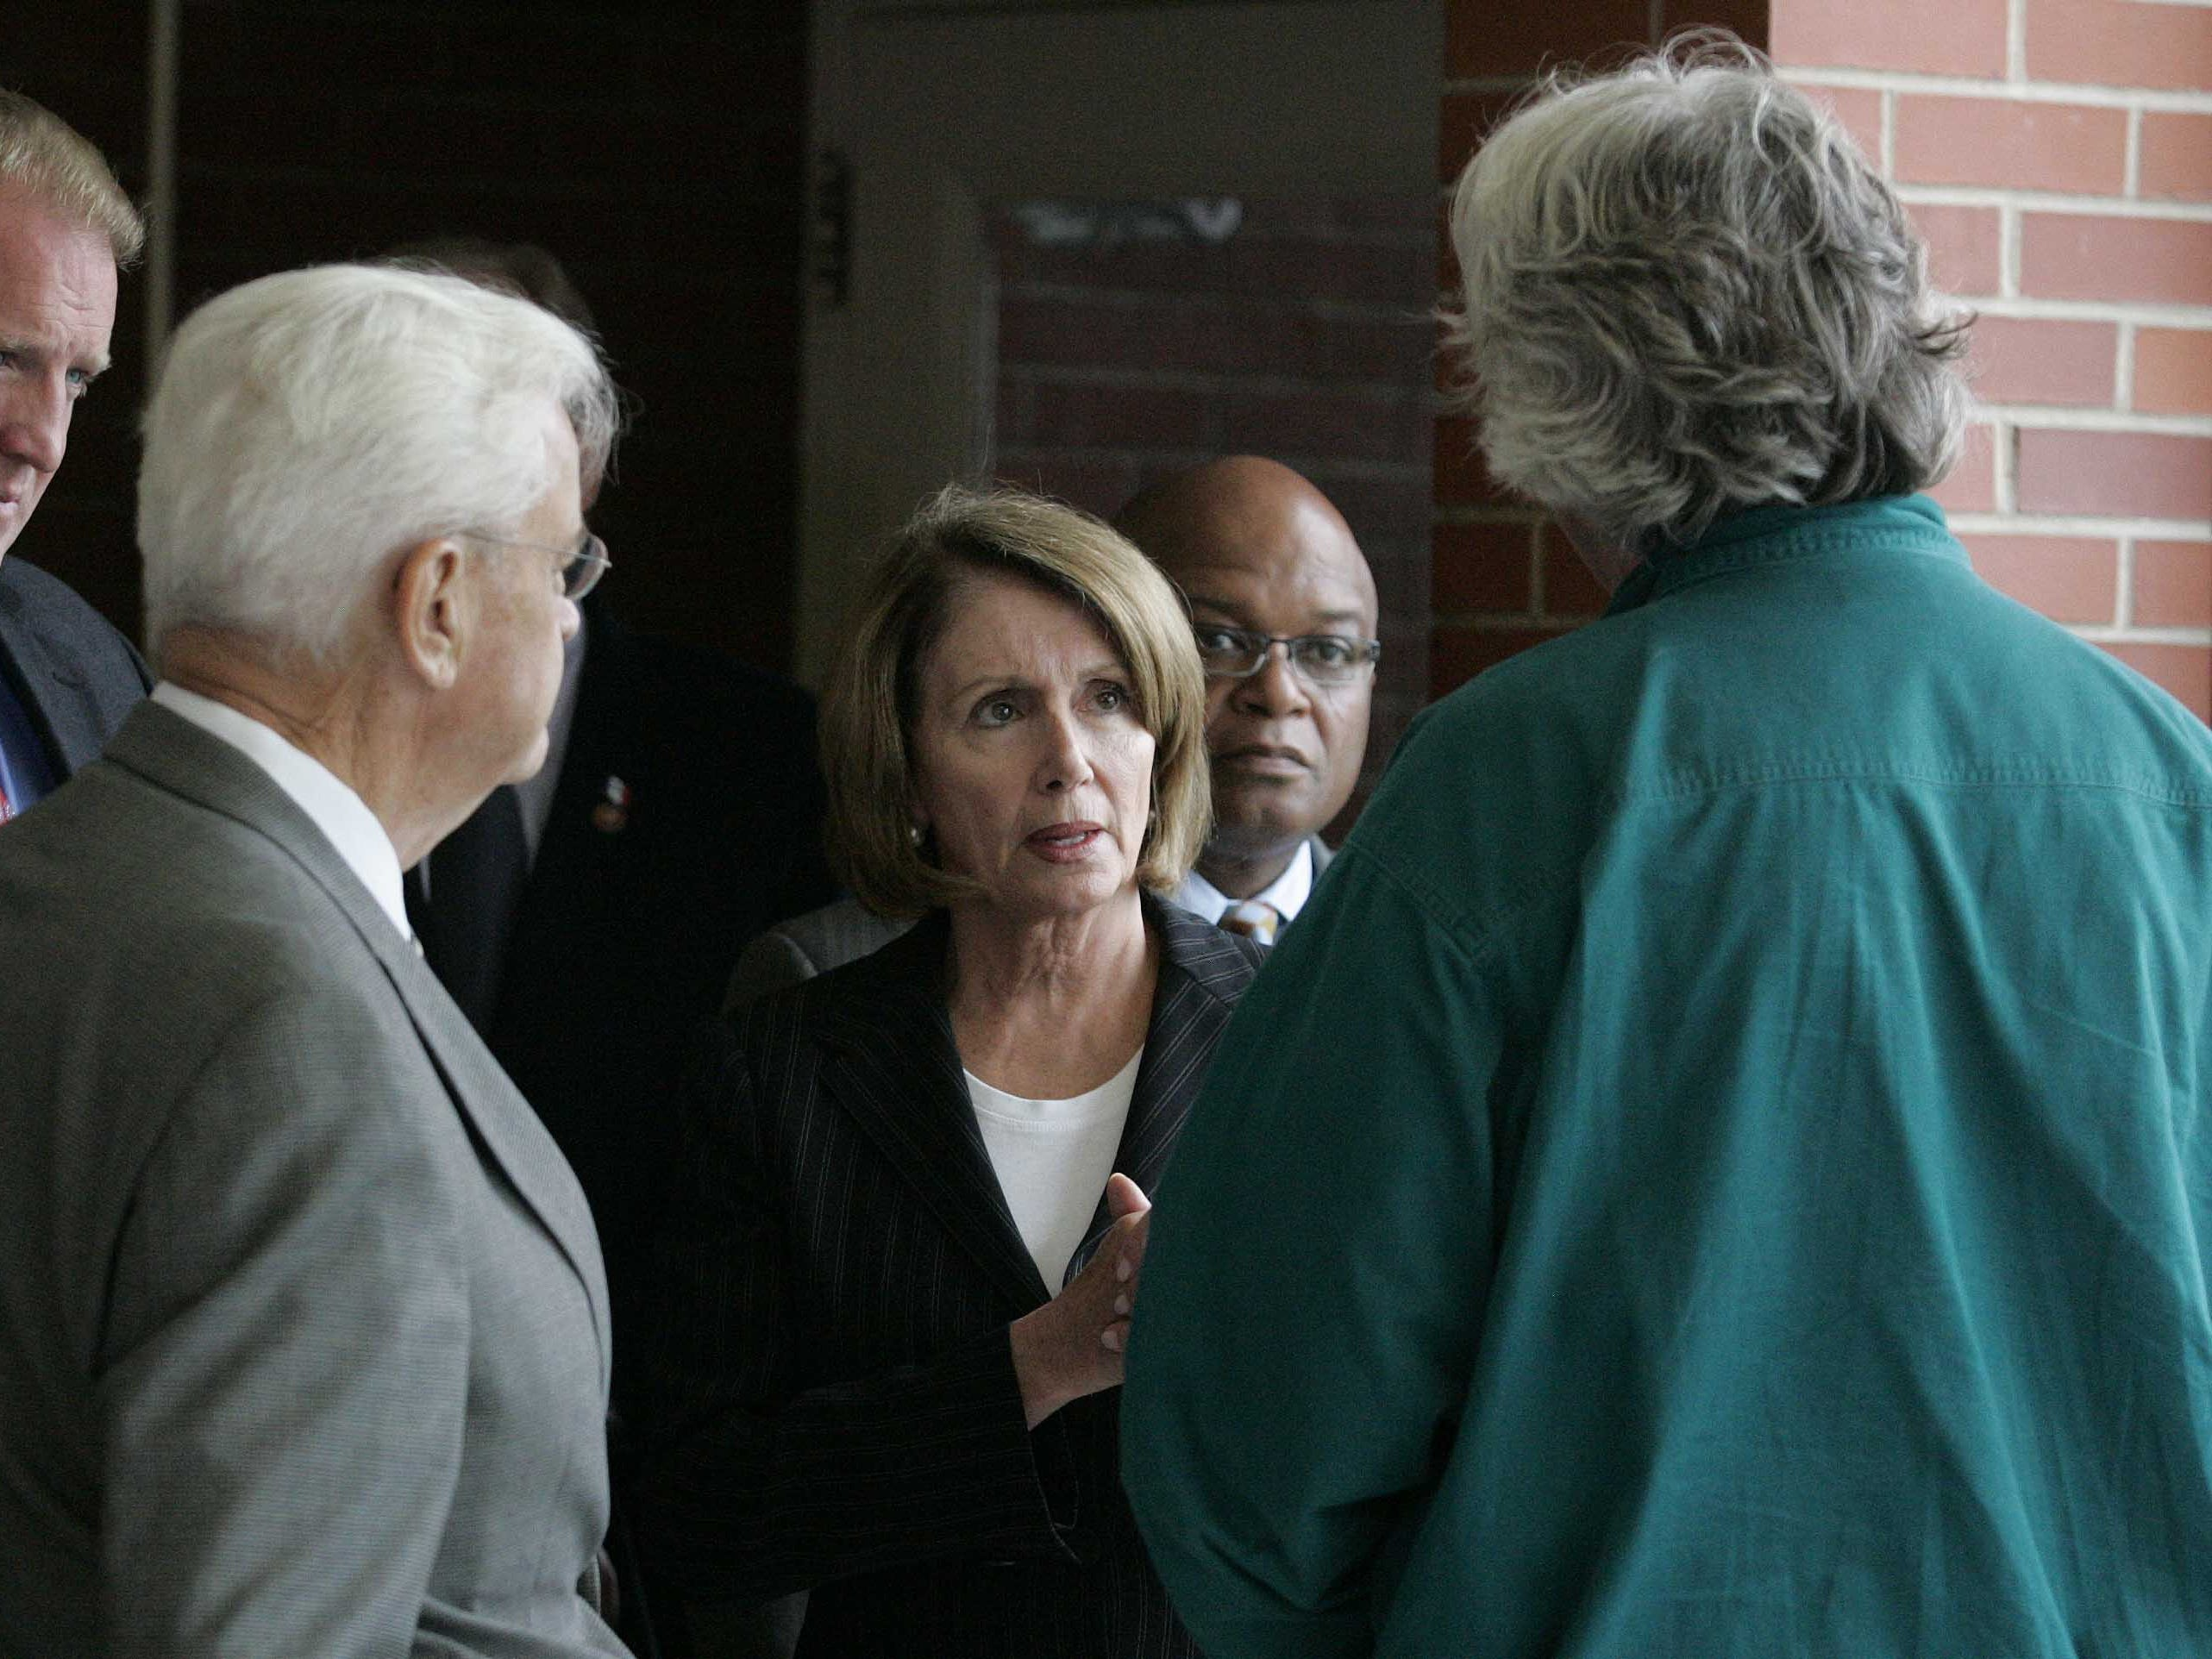 Speaker of the House Nancy Pelosi, center, spoke with Bill Stowe (back to camera) before a press conference at North High School during the flood of 2008. Congressman Leonard Boswell, left, DSM Mayor Frank Cownie, left, Iowa Gov. Chet Culver and North High Principal Dr. Frank Lewis (behind Pelosi) joined him after a briefing on the flood damage to the Birdland Park Neighborhood and North High School.